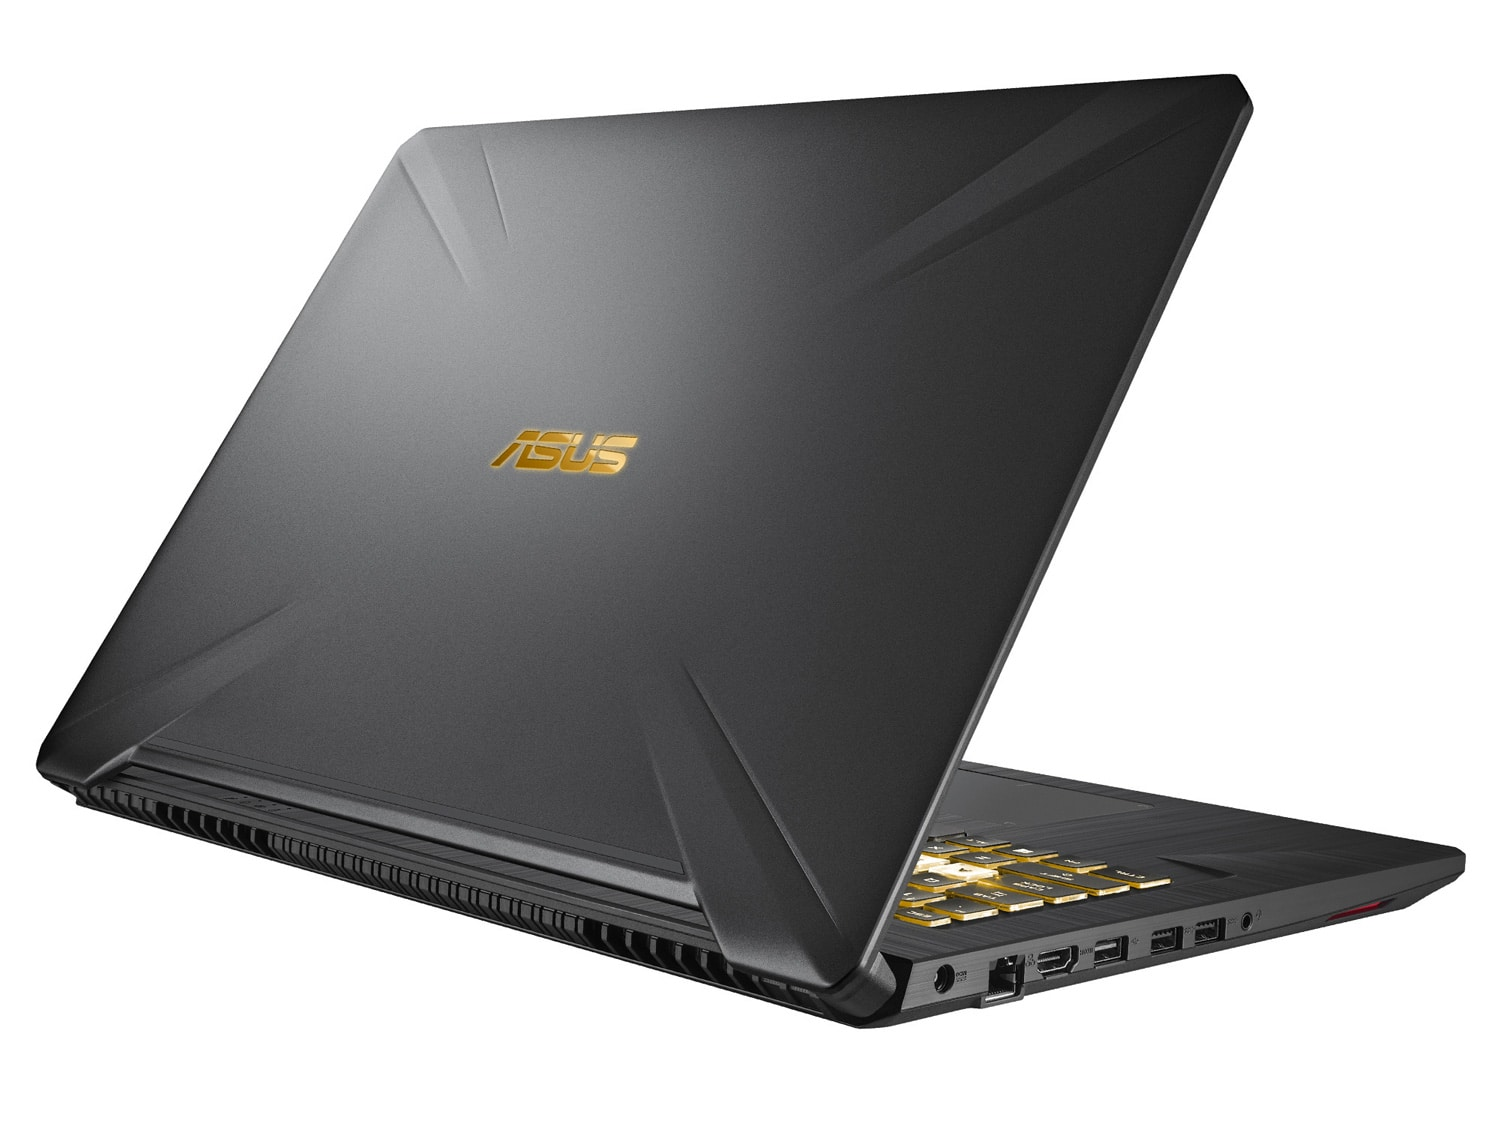 "Asus TUF 765GM-EW023T, PC portable 17"" gamer rapide (947€)"